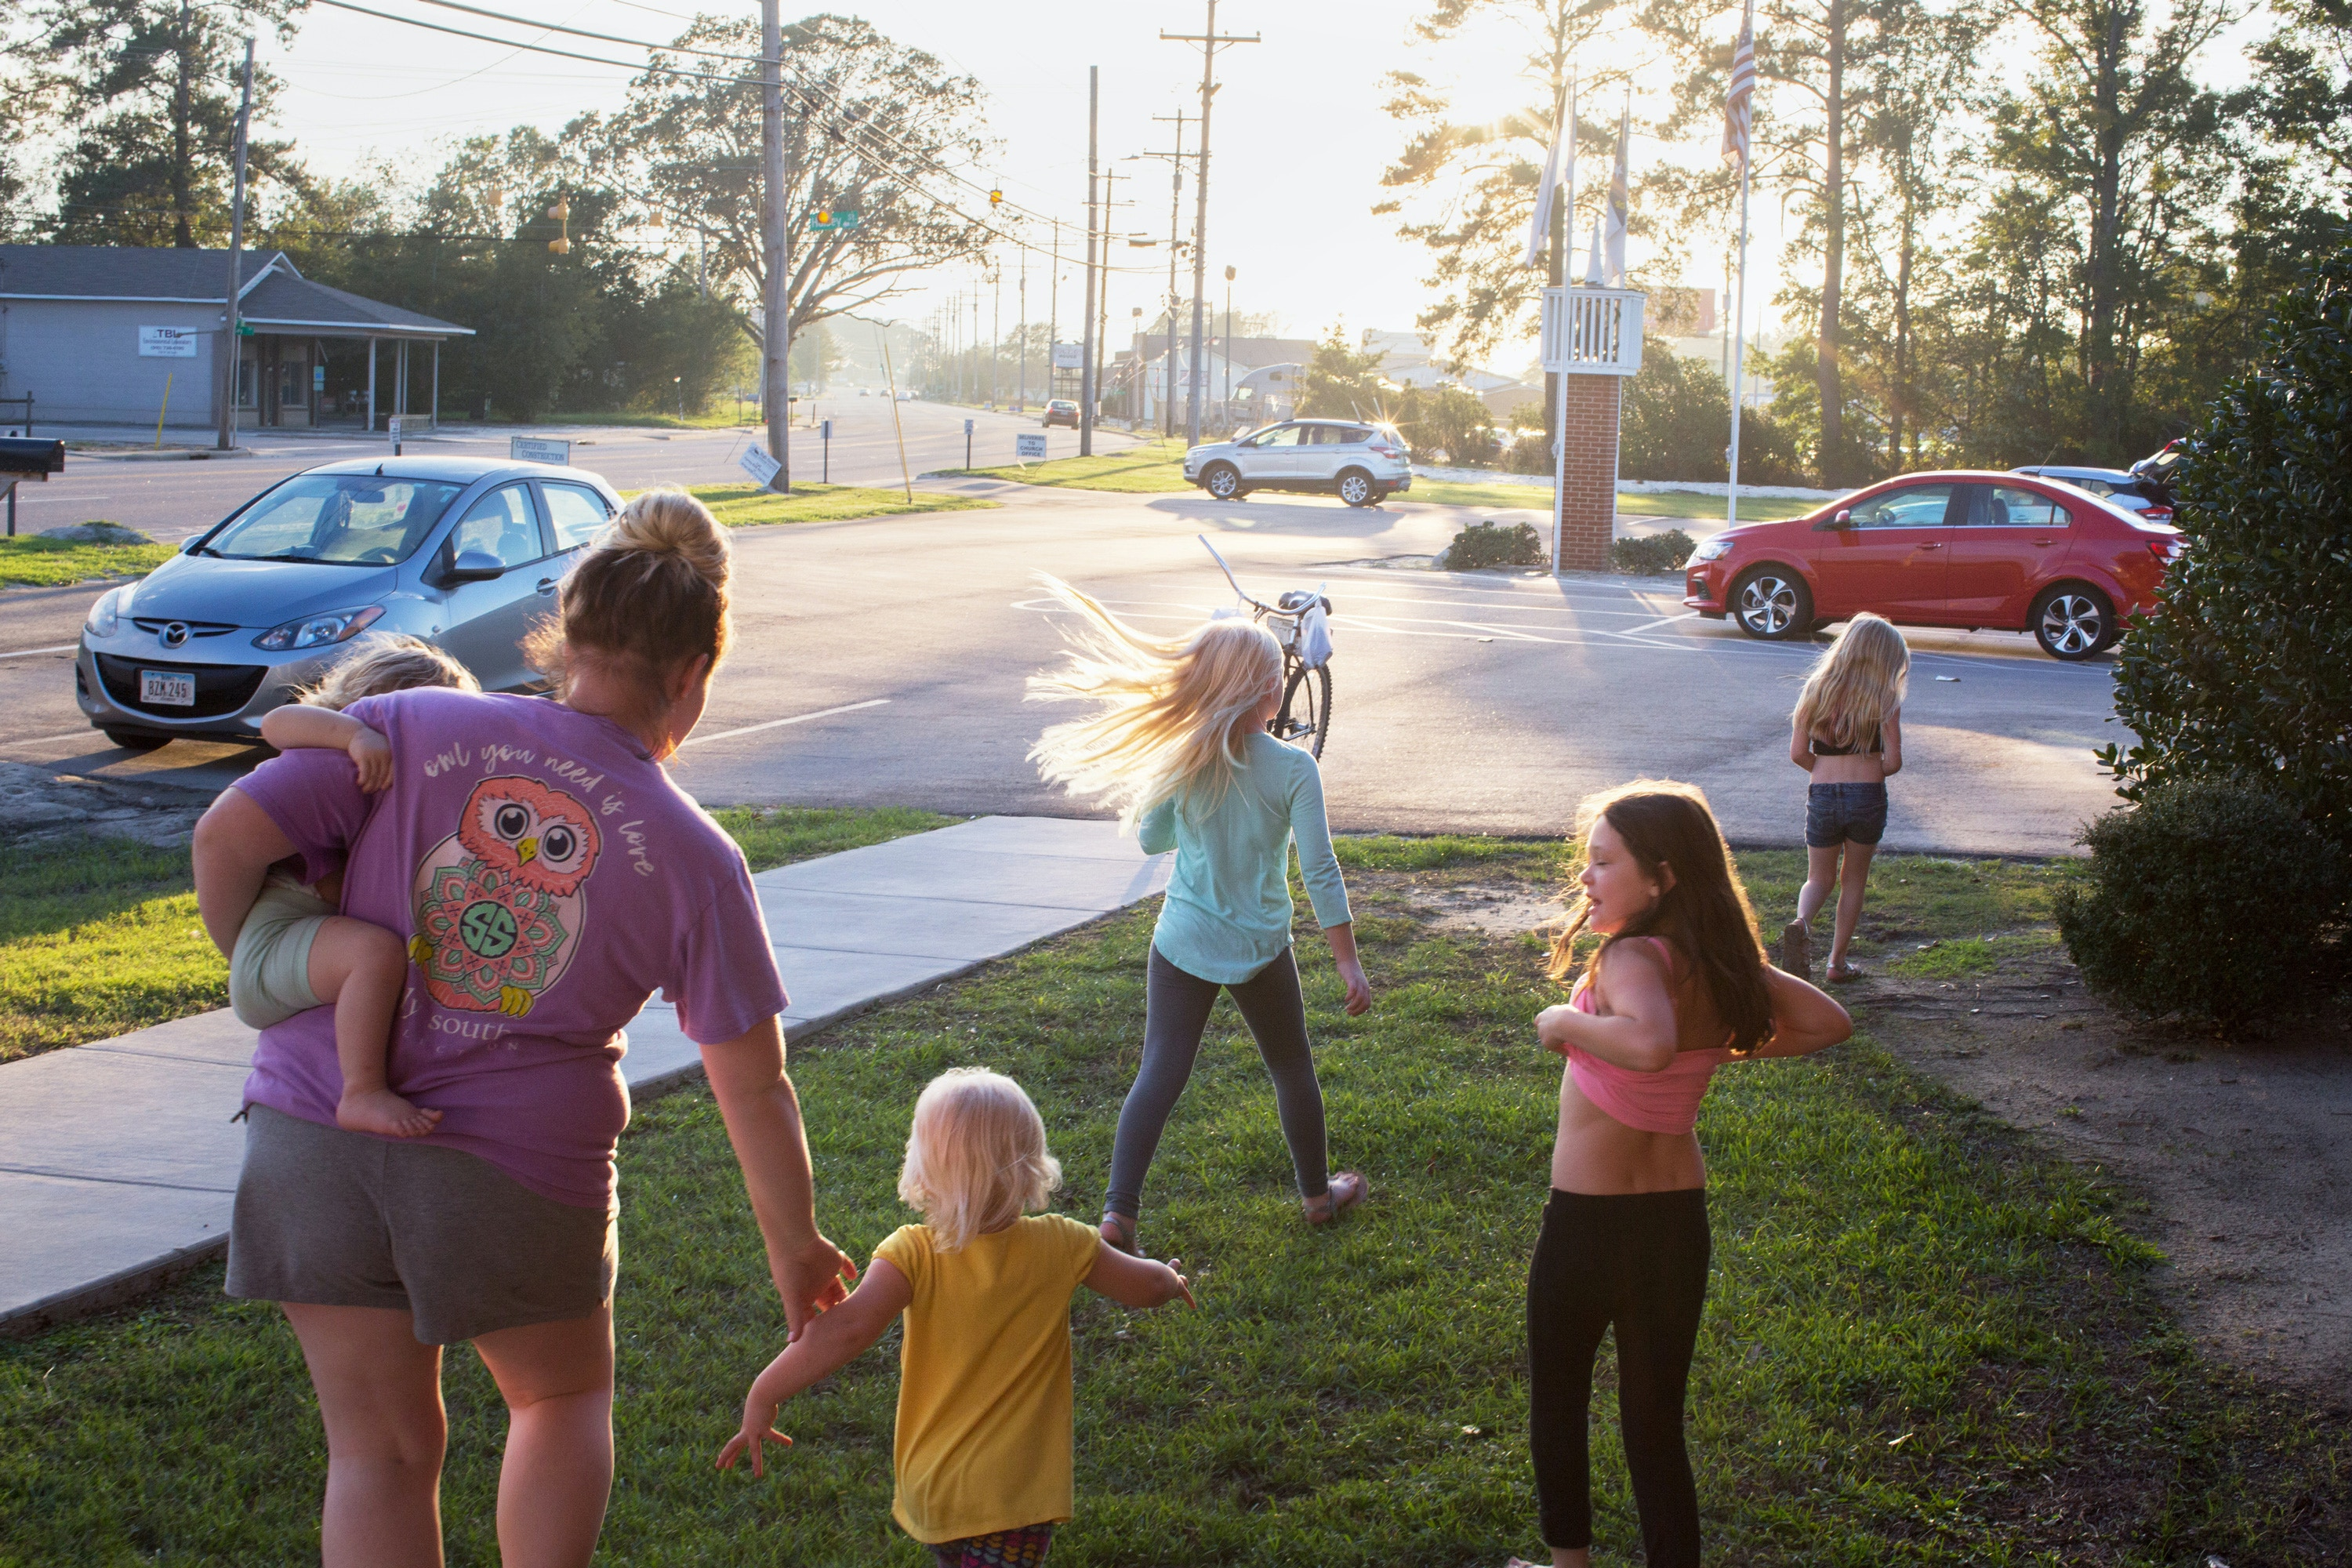 October 21, 2018. Lumberton NC. Lauren Herring and her daughters walk towards an aid distribution center at West Lumberton Baptist, a church that was flooded during both storms. Lumberton, North Carolina is the seat of one of the poorest counties in the nation. In 2016, it was catastrophically flooded due to Hurricane Matthew creating a first crop of people who fled their homes permanently, and left hundreds who were hanging on by a thread financially and physically as they prayed for FEMA aid and other donations to help them rebuild and suffered from systemic neglect. Just as the community finally began to recover, hurricane Florence hit, causing flooding in many of the exact same places and beyond. Now in the areas hardest hit by the flooding families are struggling to recover and grappling with the new reality of the rising waters and what it means for their home. (Natalie Keyssar)